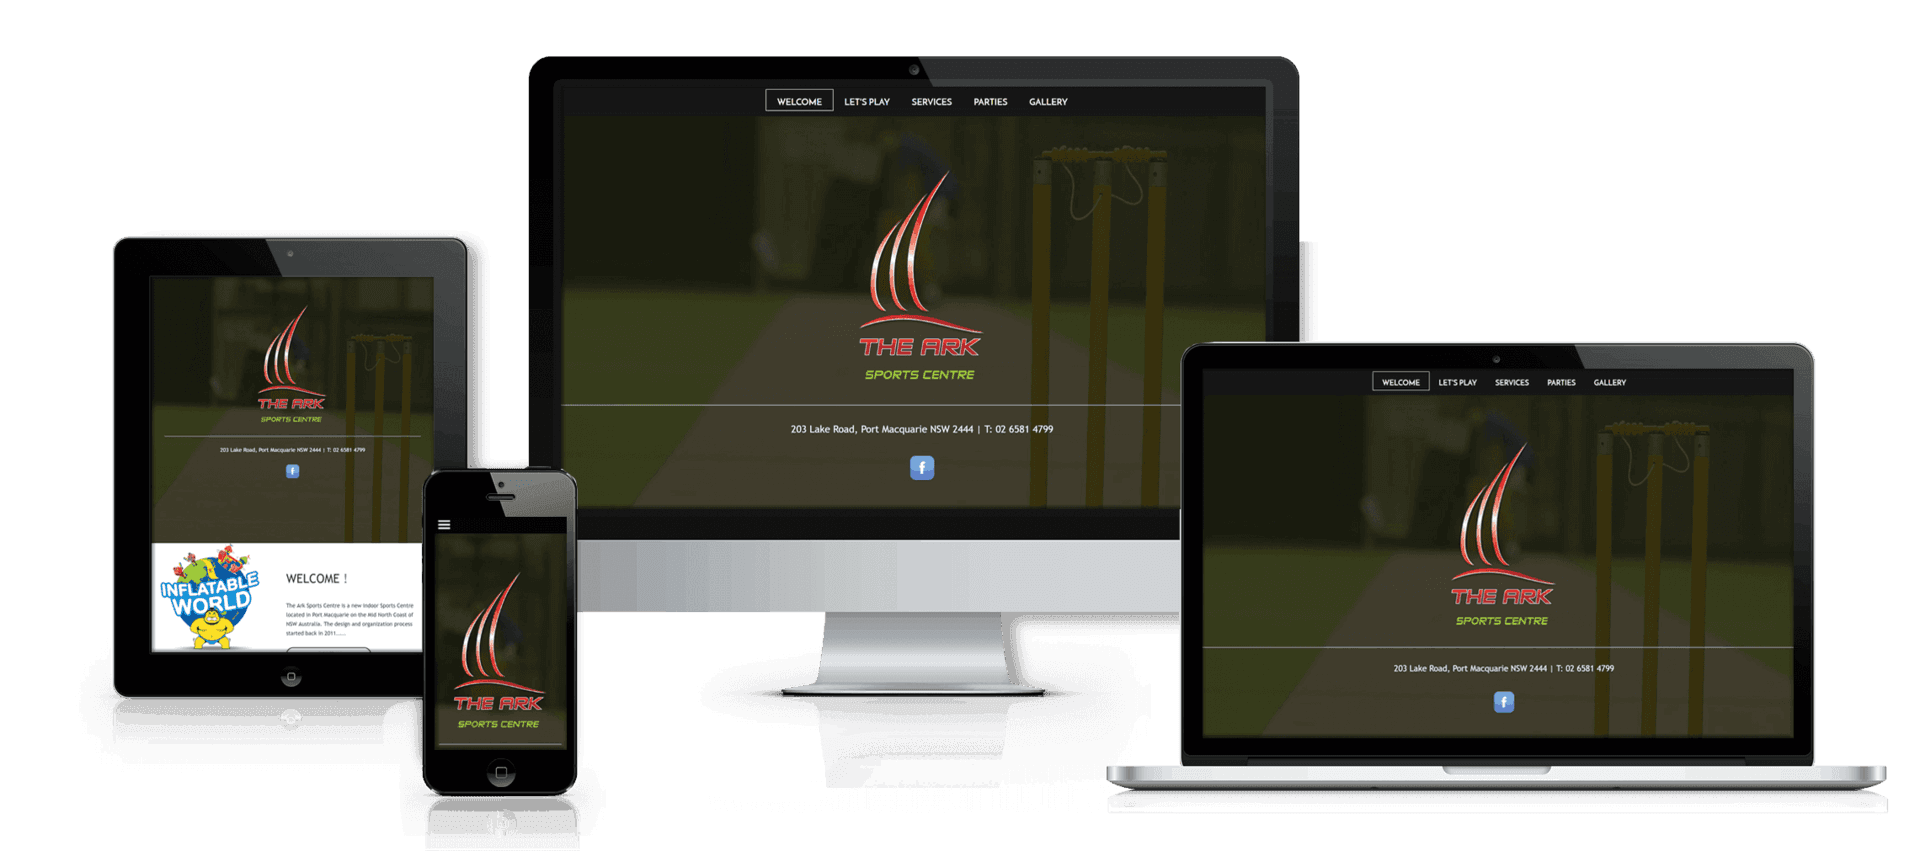 Edgezone Media client Ark Sports Centre website image.